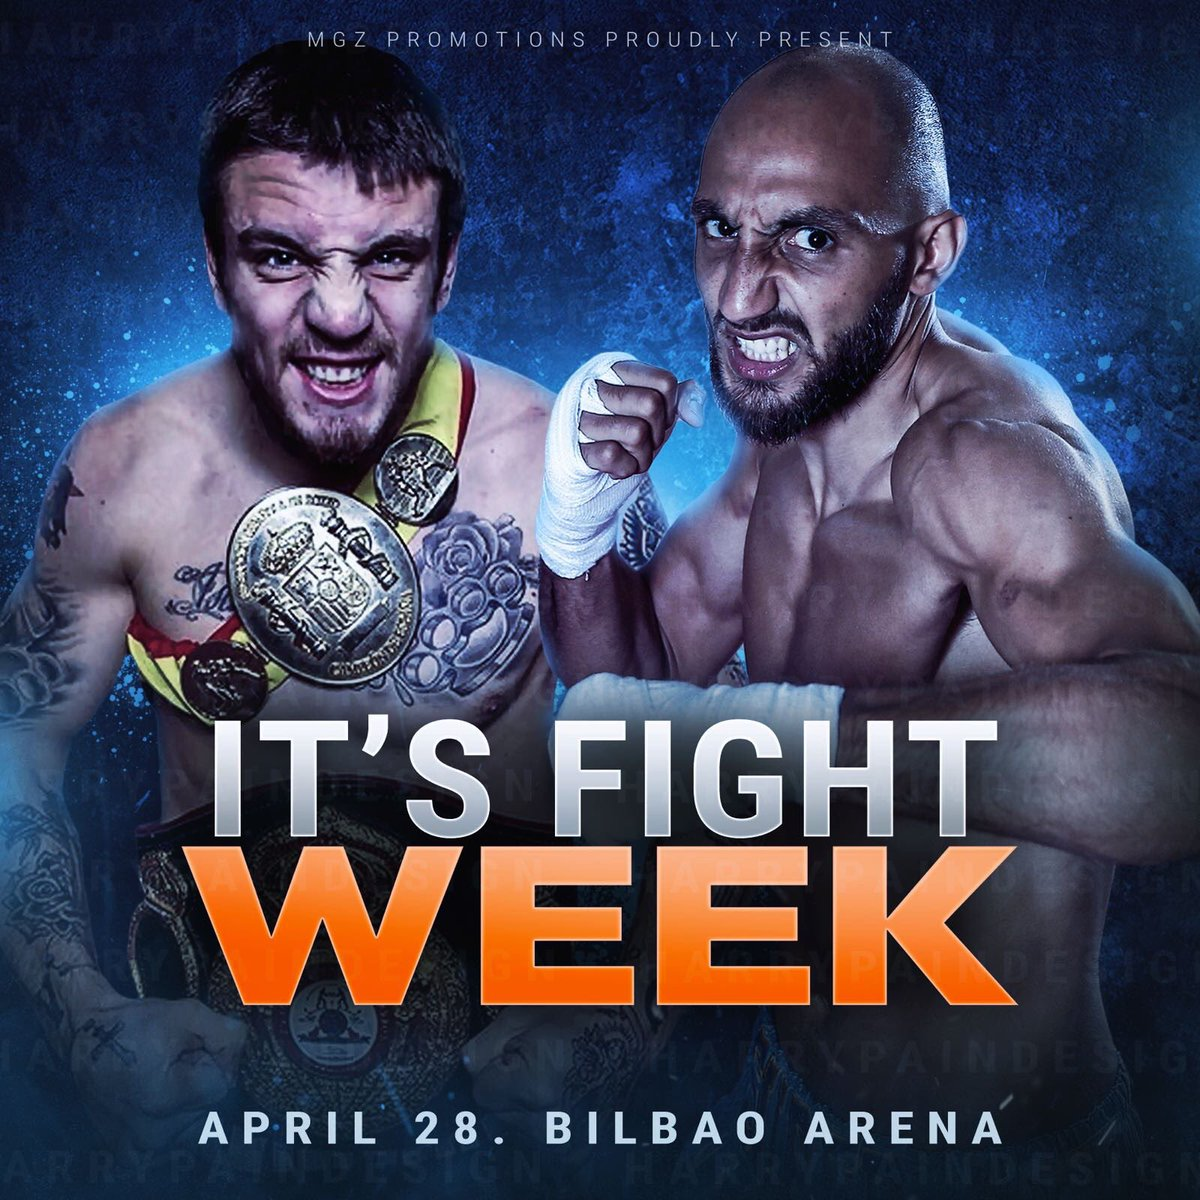 Well it's finally here! Fight Week! The countdown is on. Saturday 28th April I'll be fighting the unbeaten Spanish champion @LejarragaKerman for the vacant European Welterweight title @MGZ_Promotions at the @Bilbao_Arena 🇪🇸vs🇬🇧 🥊🔥